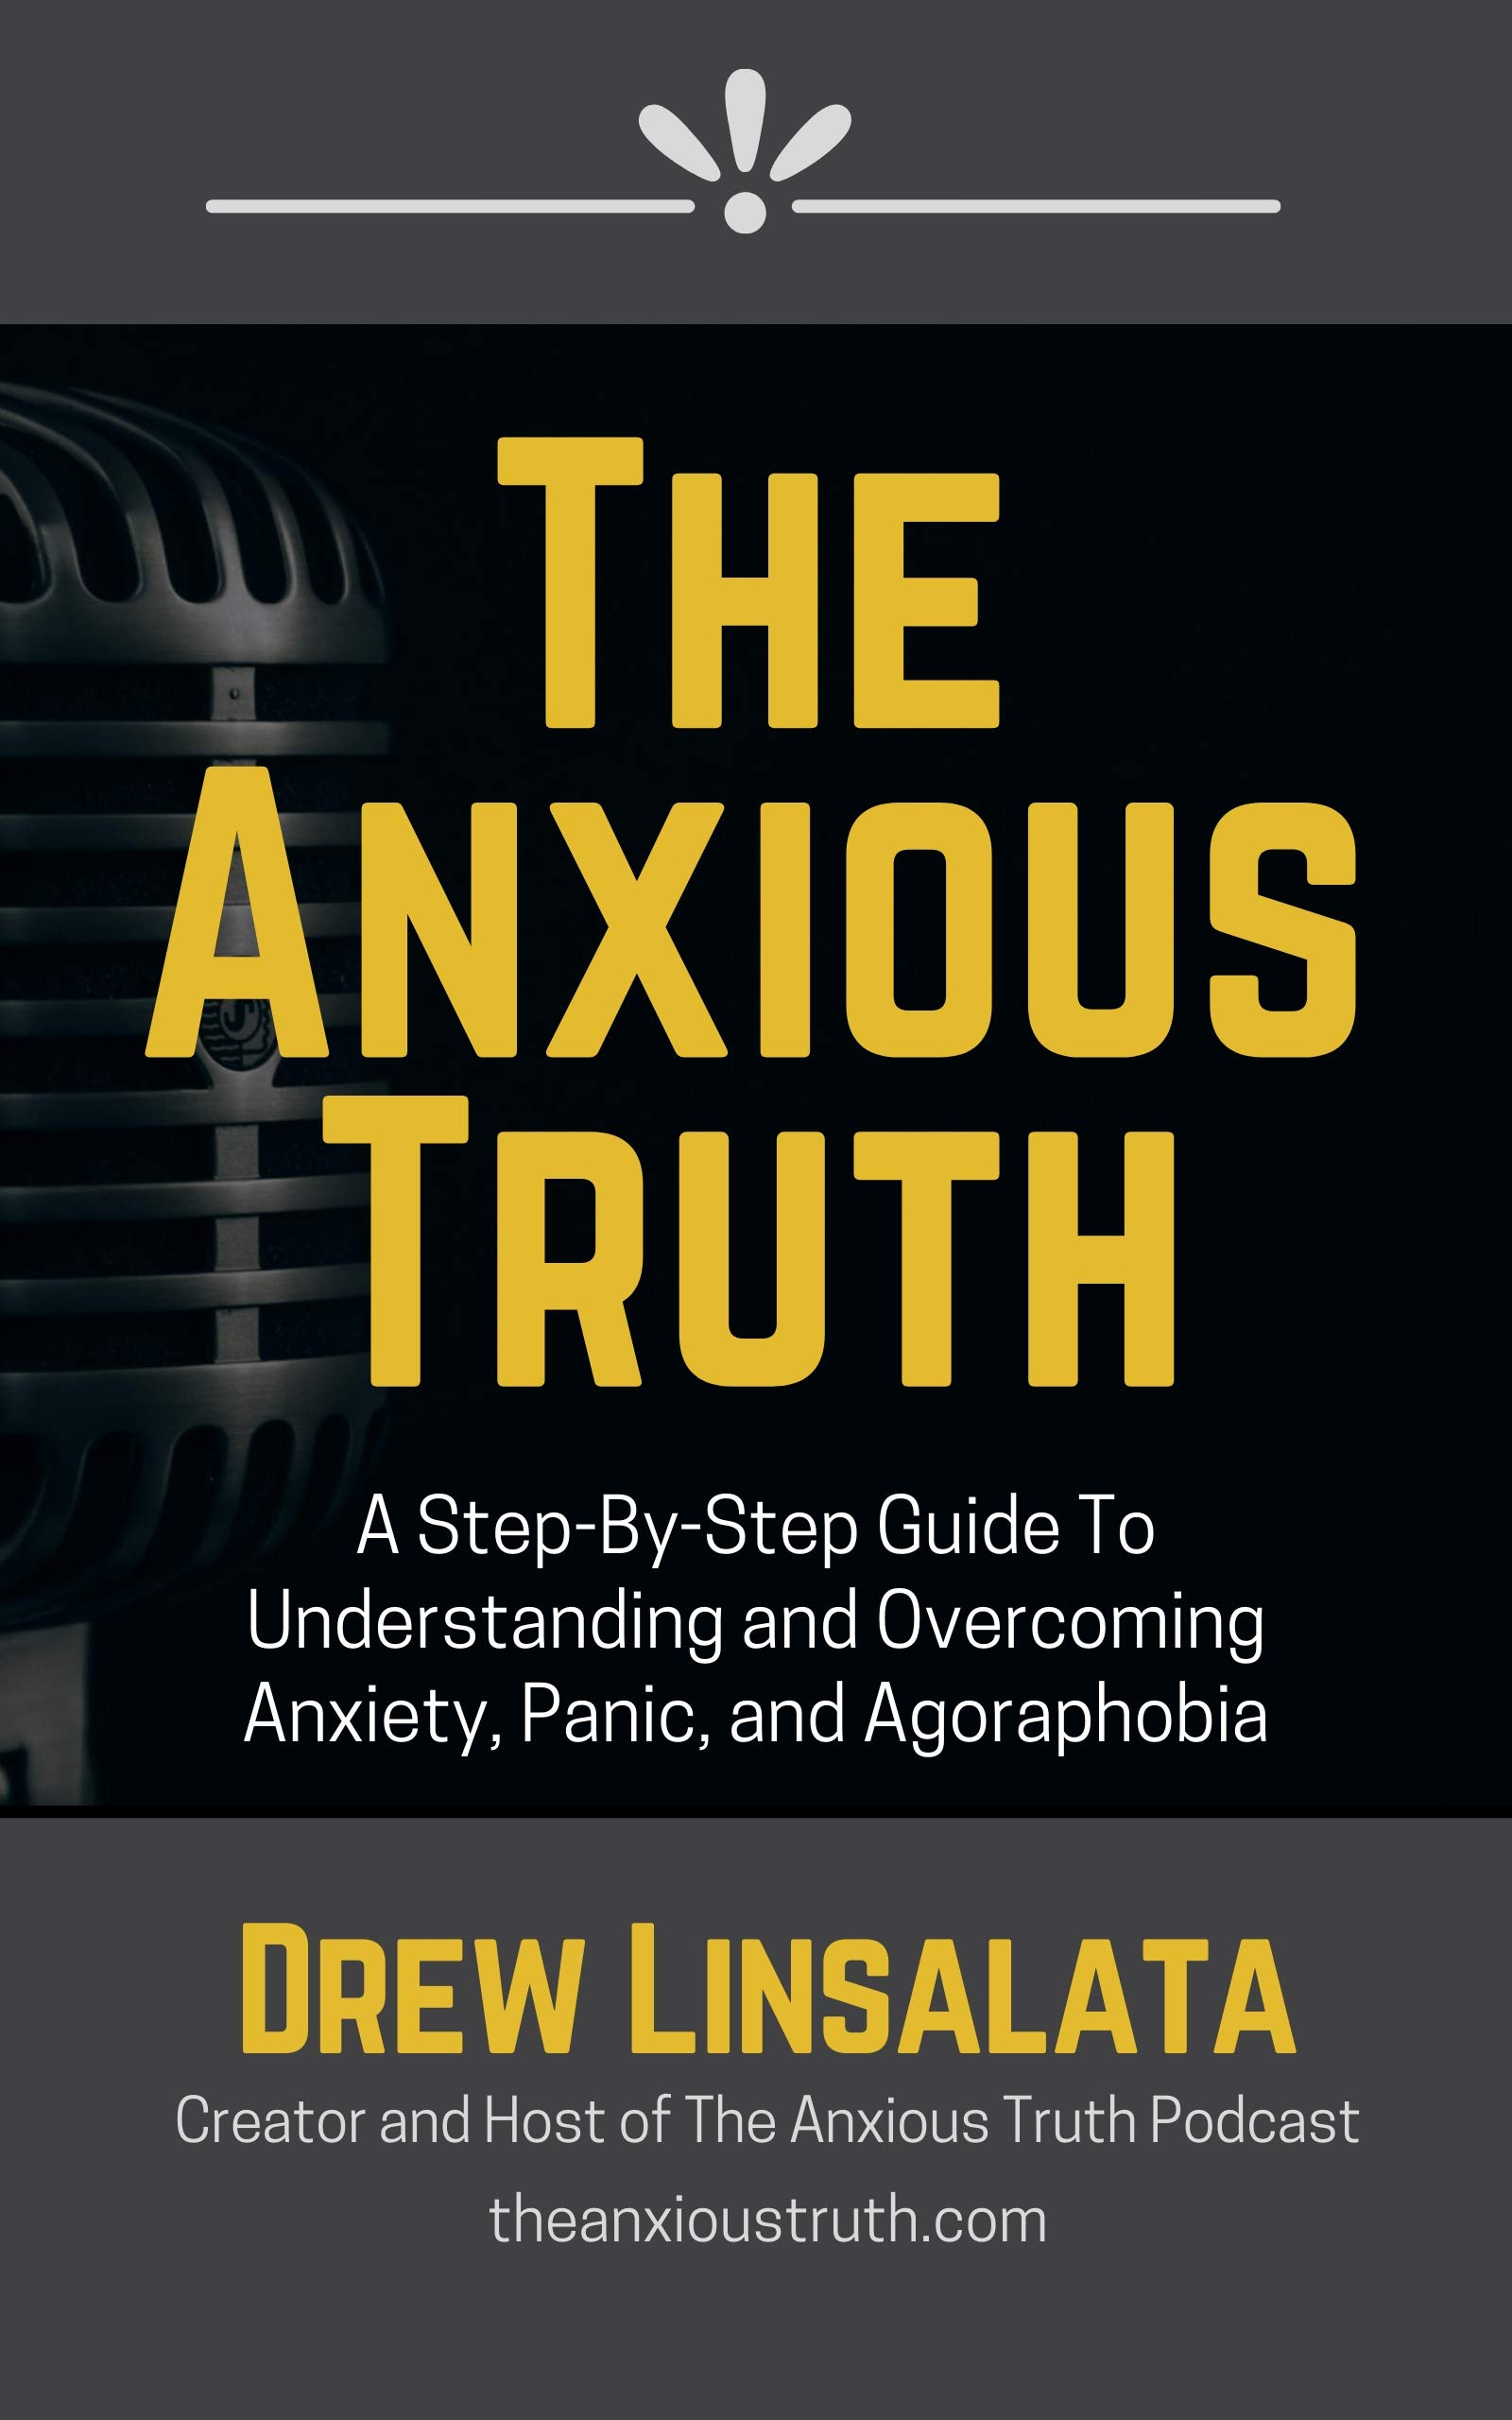 The Anxious Truth : A Step-By-Step Guide To Understanding and Overcoming Panic, Anxiety, and Agoraphobia